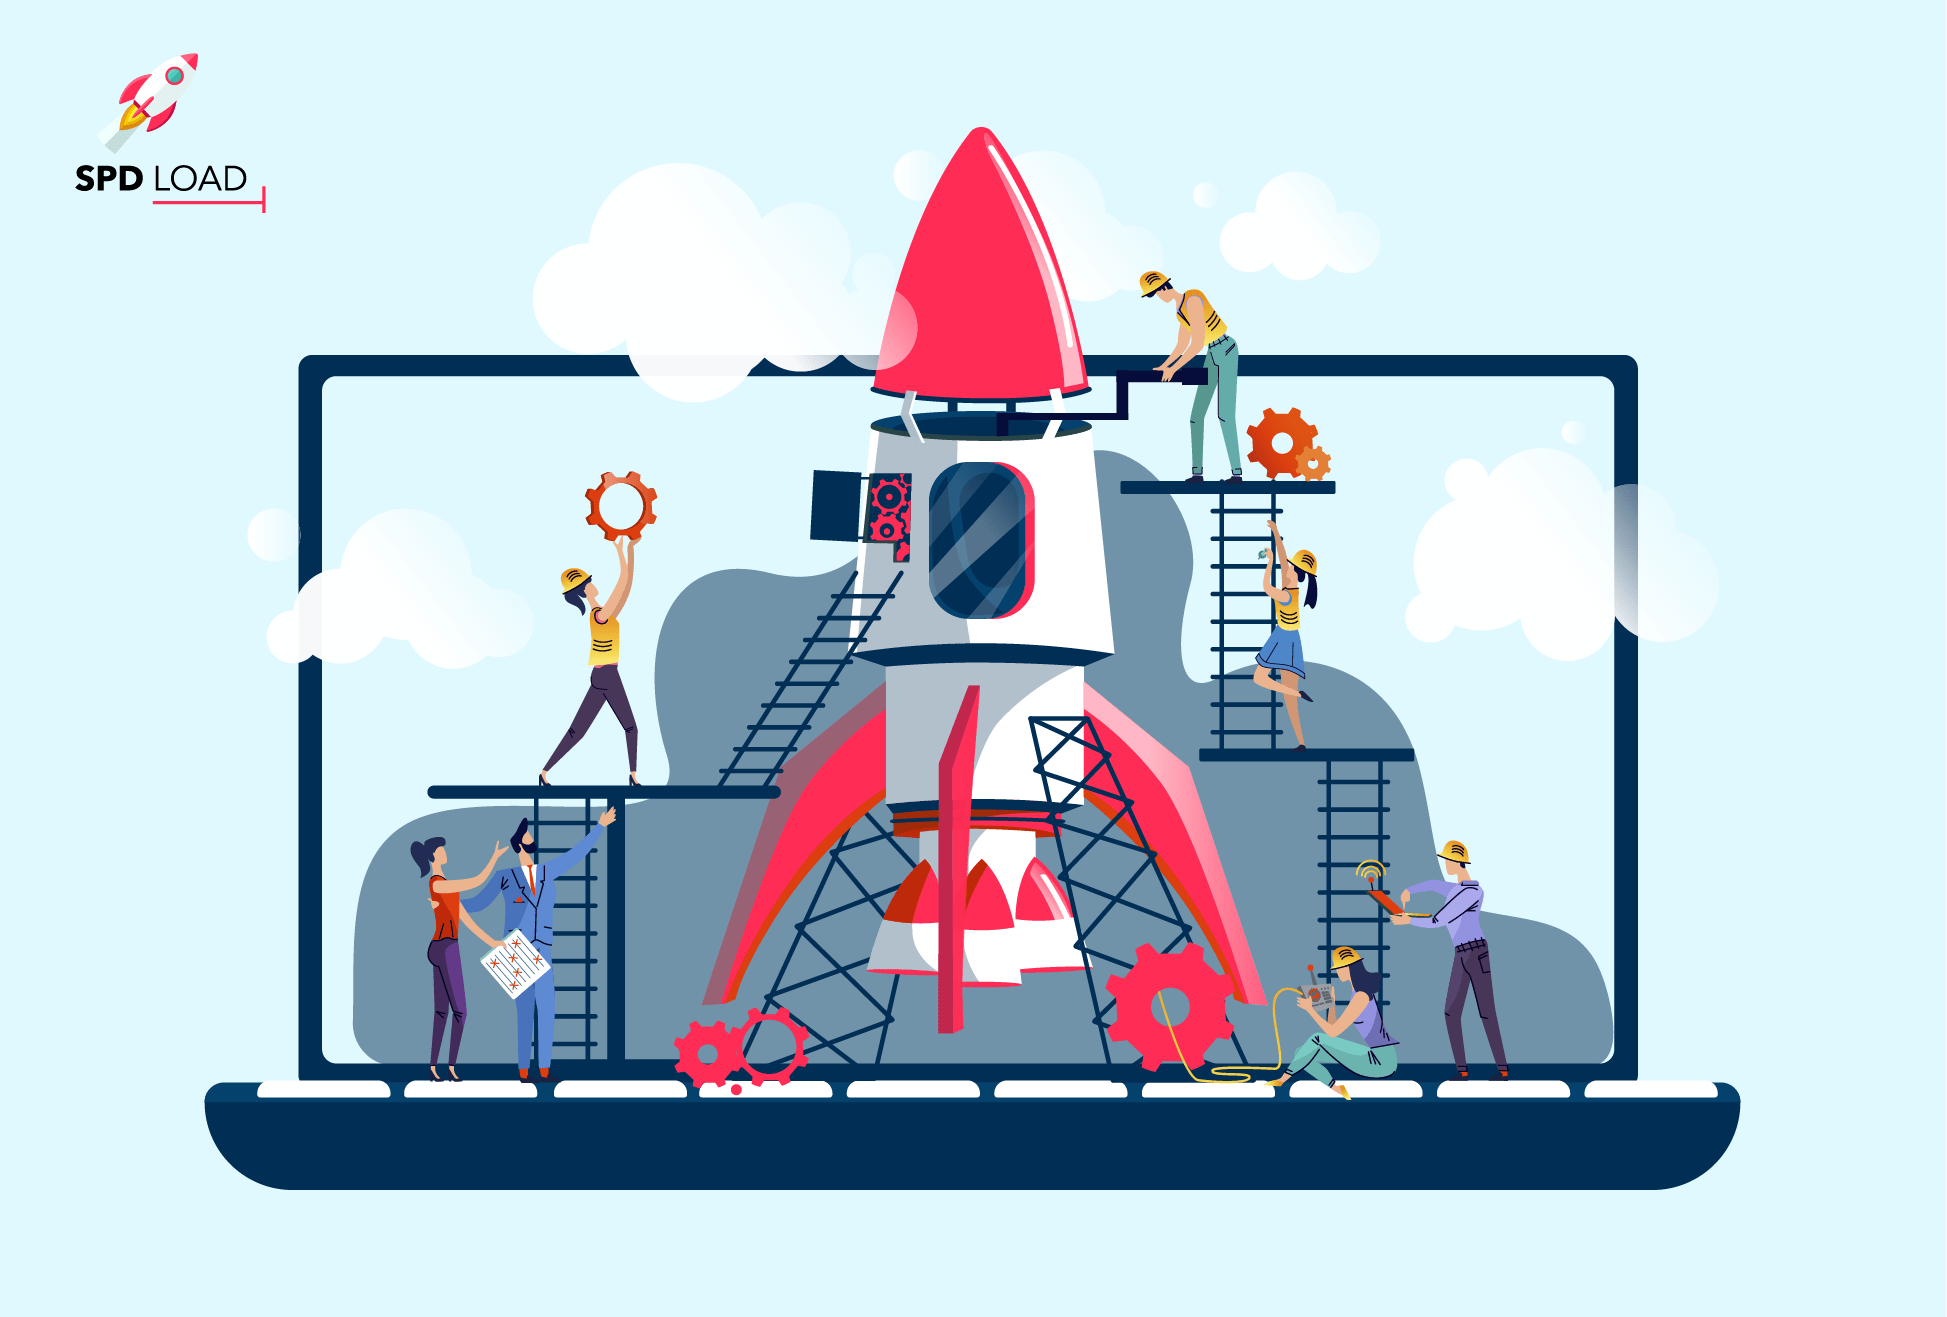 Check out the overview of best SaaS startups to watch in 2020